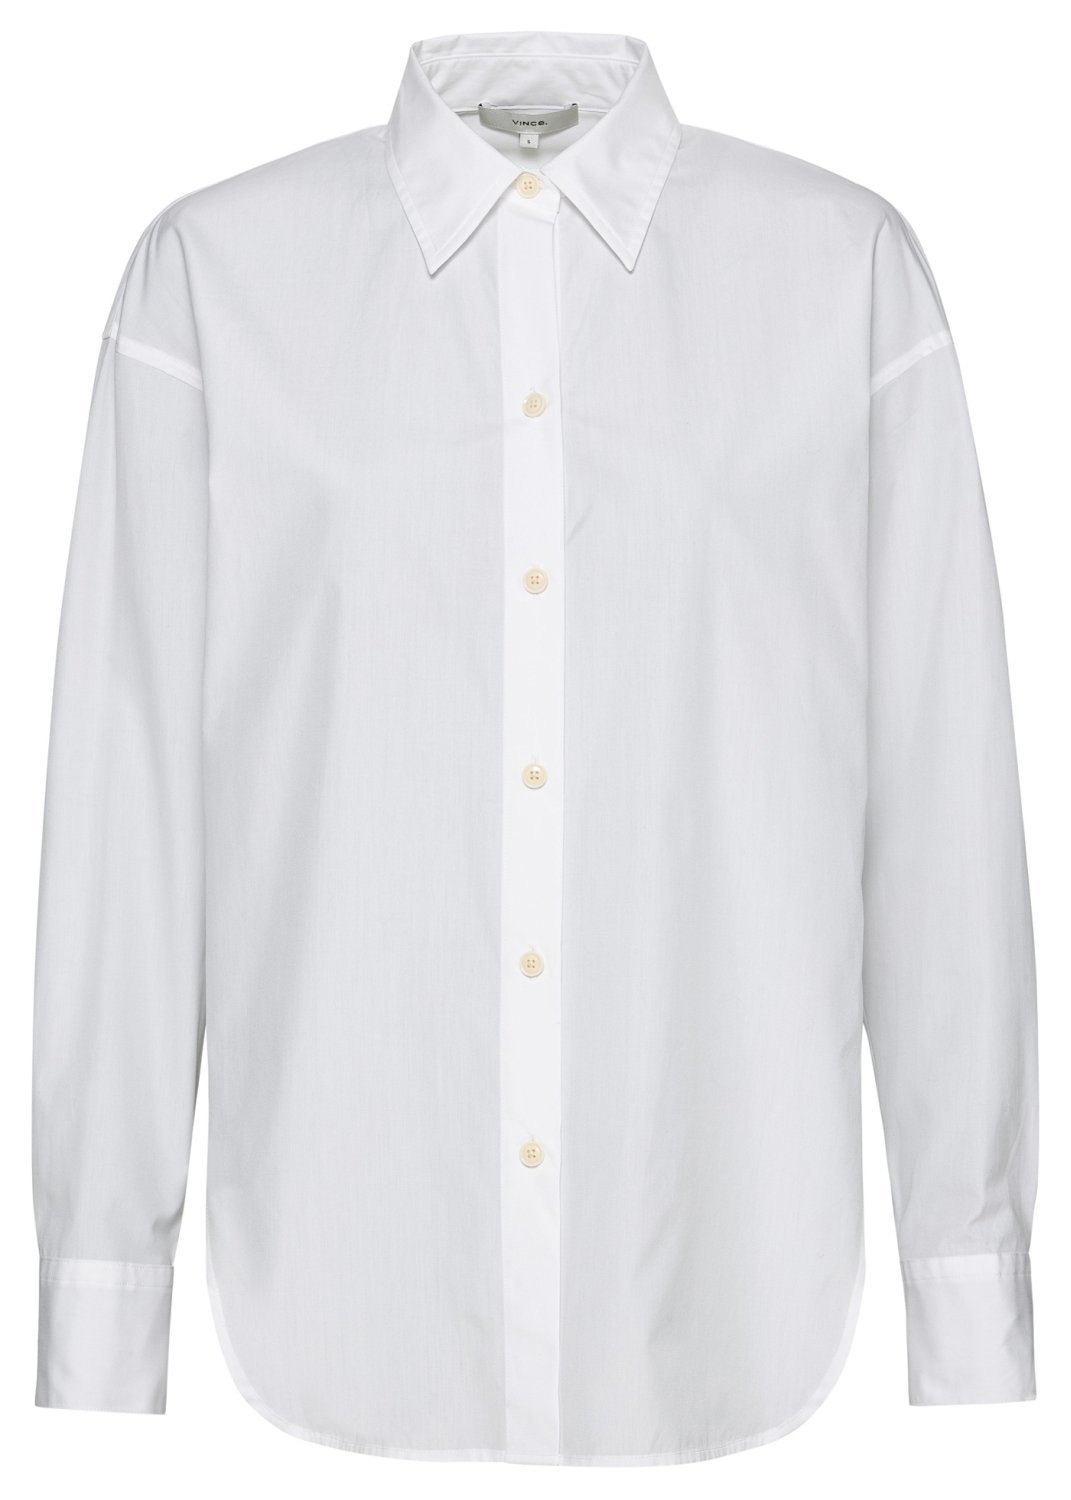 CONVERTIBLE BUTTON DOWN image number 0